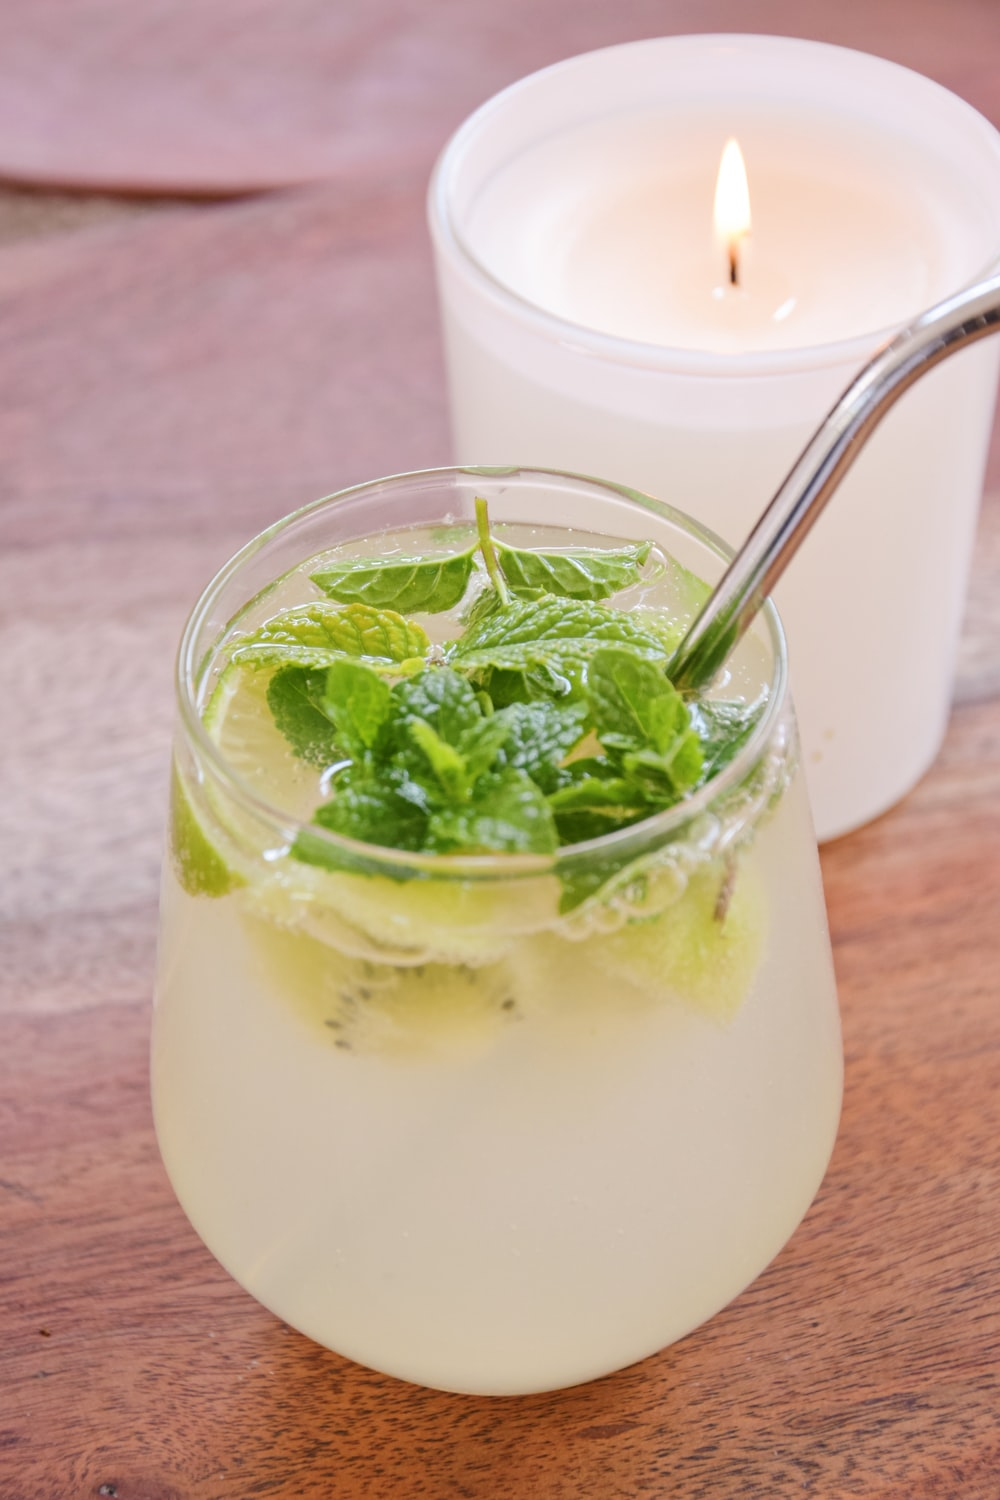 clear drinking glass with white liquid and green leaves